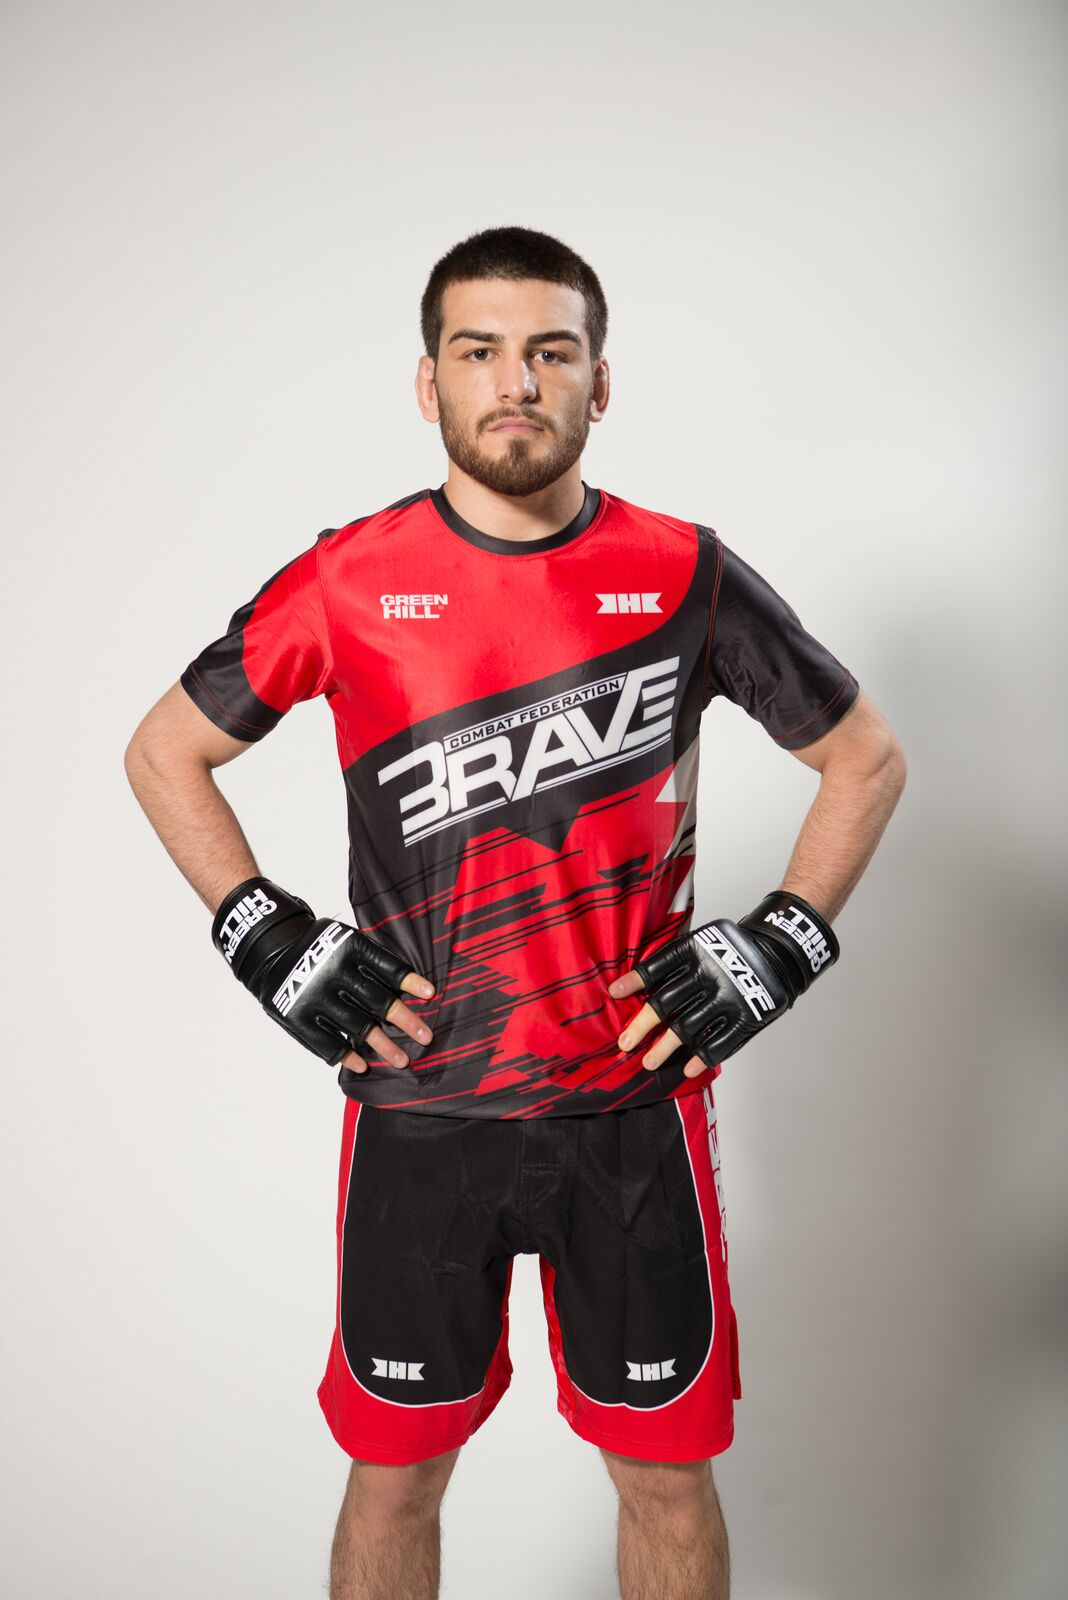 Jose Torres hoping to inspire youth ahead of BRAVE CF 29 title fight - BraveFC